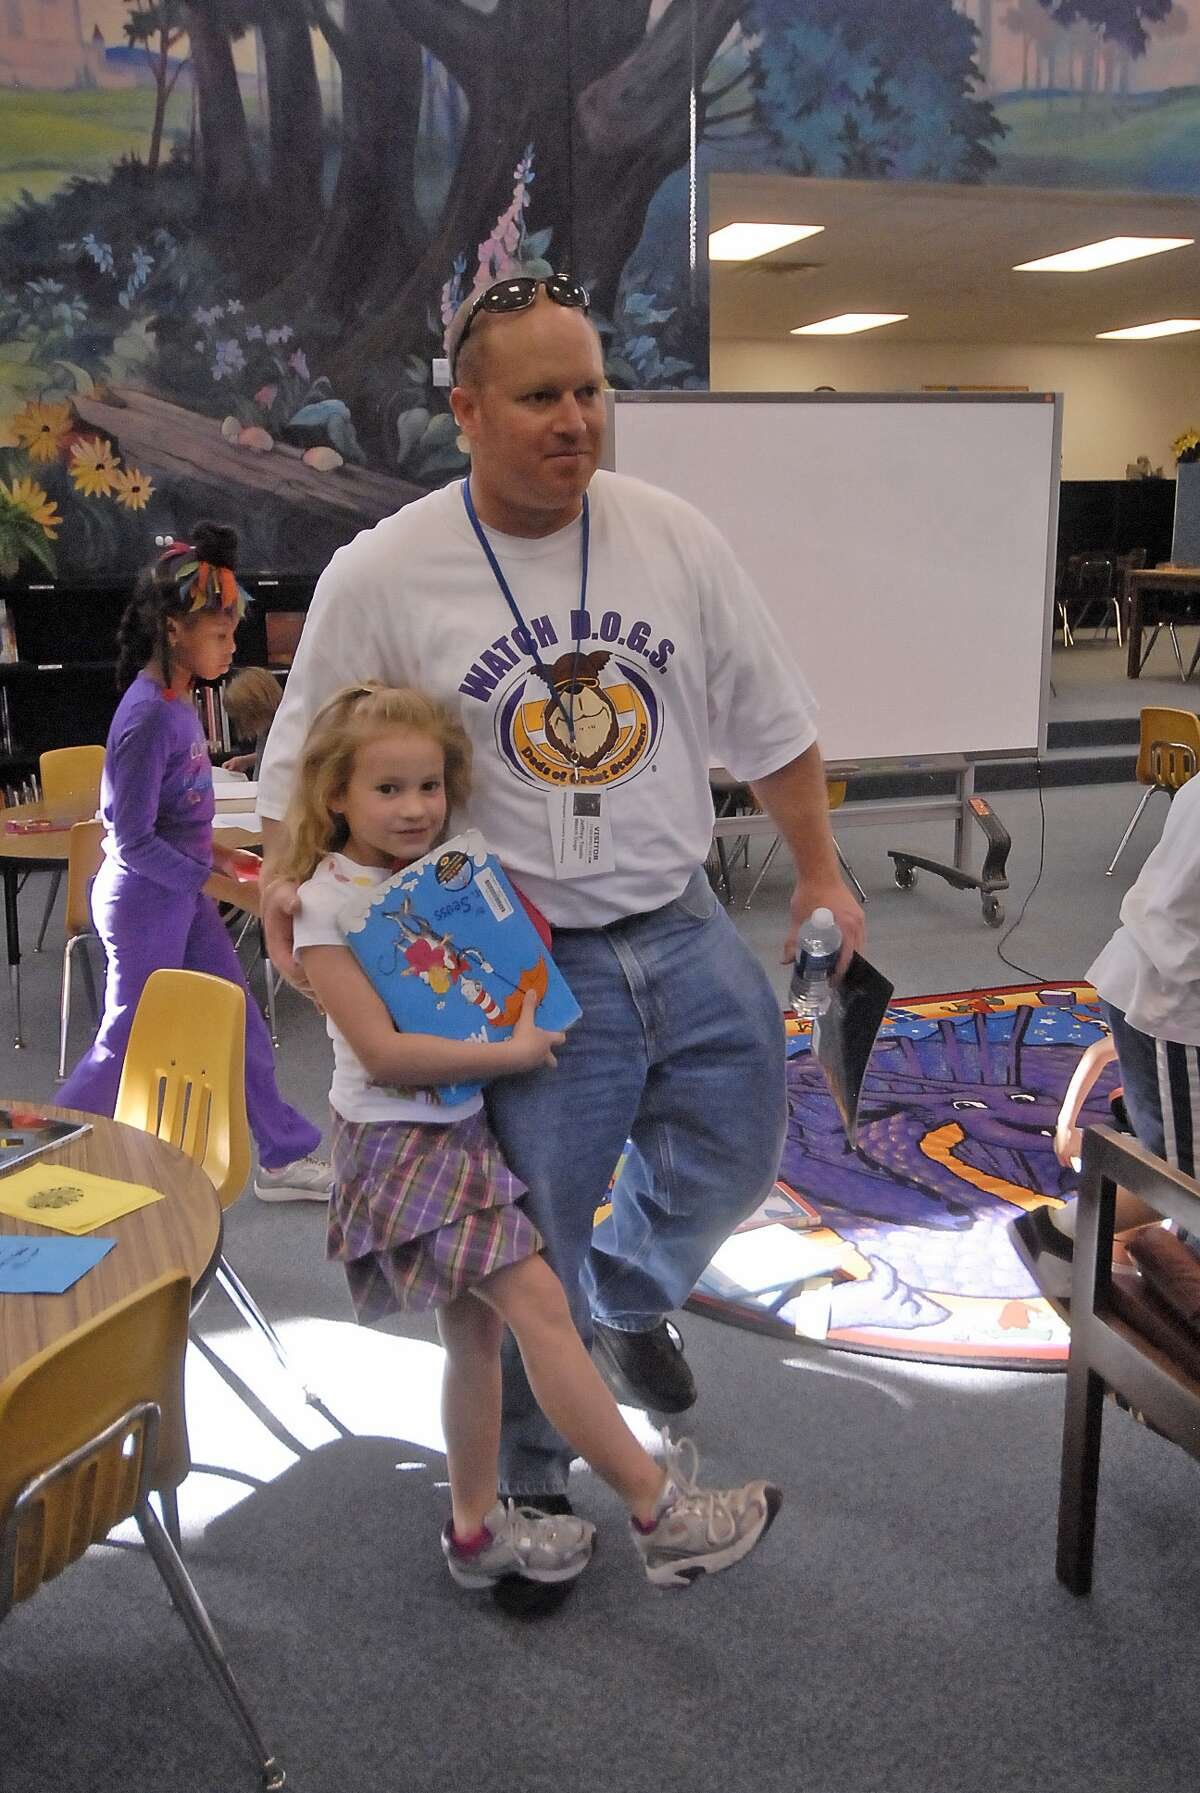 Nottingham Country Elementary Watch D.O.G.S. member Jeff Tootle helps his seven-year-old daughter Katie Tootle during a trip to the library.